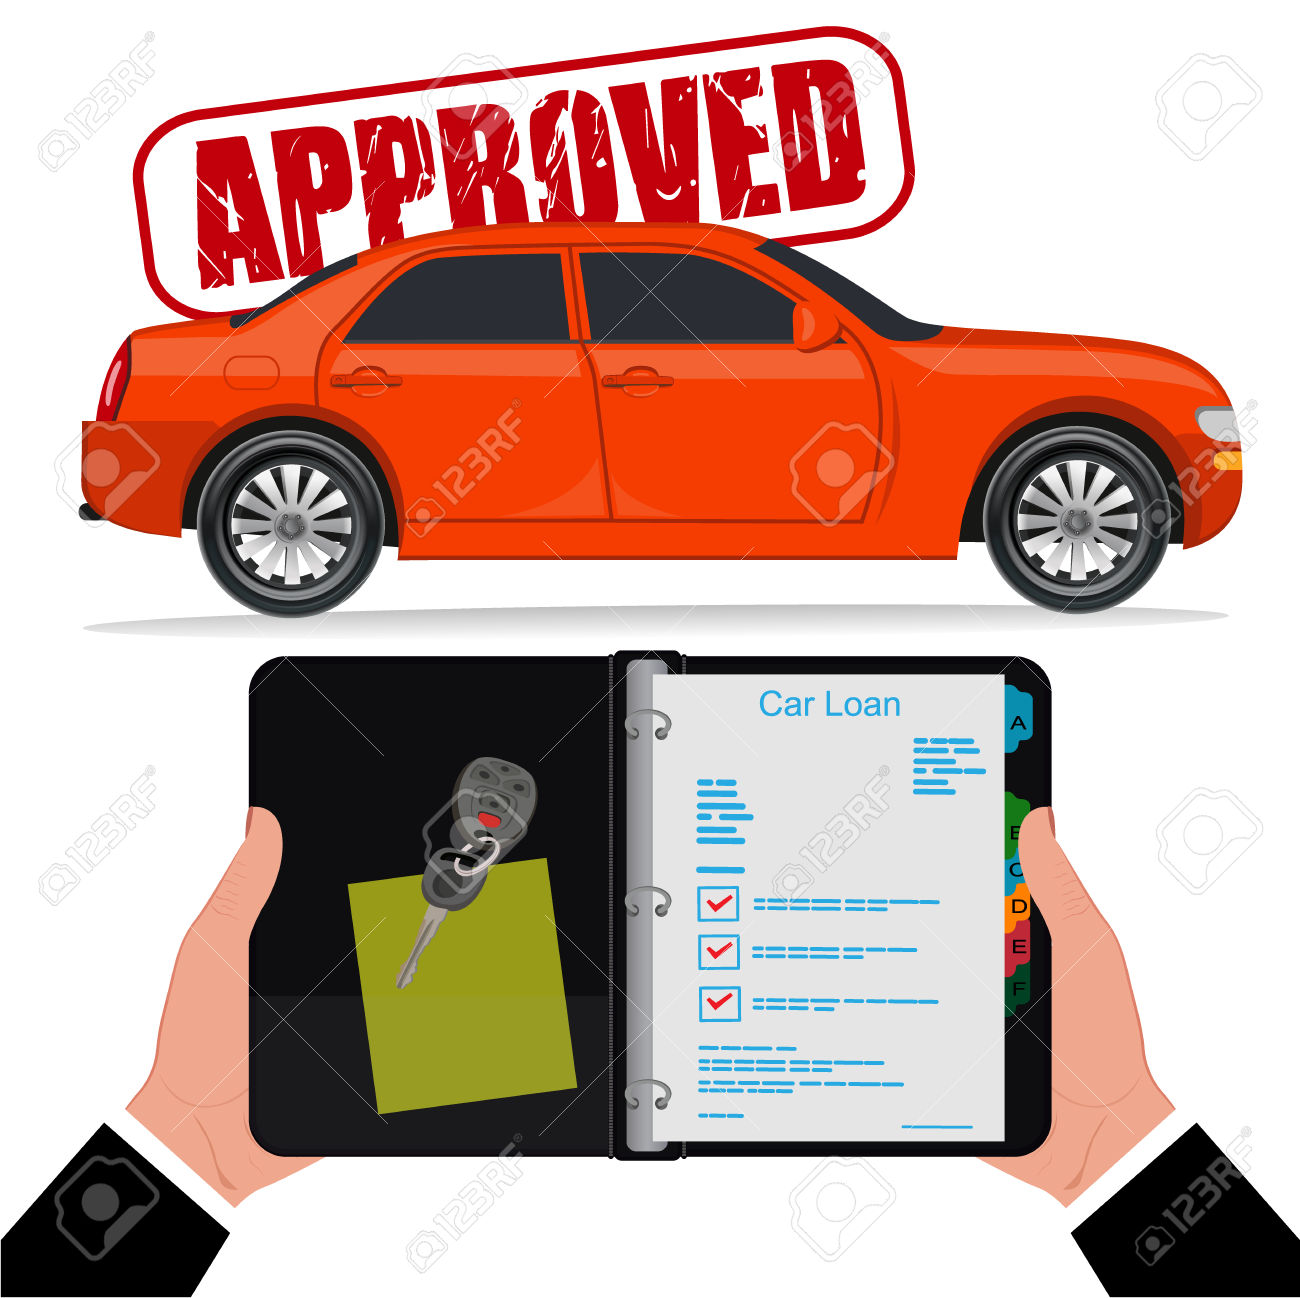 Approved Car Loan, Vector Illustration, Flat Style Royalty Free.